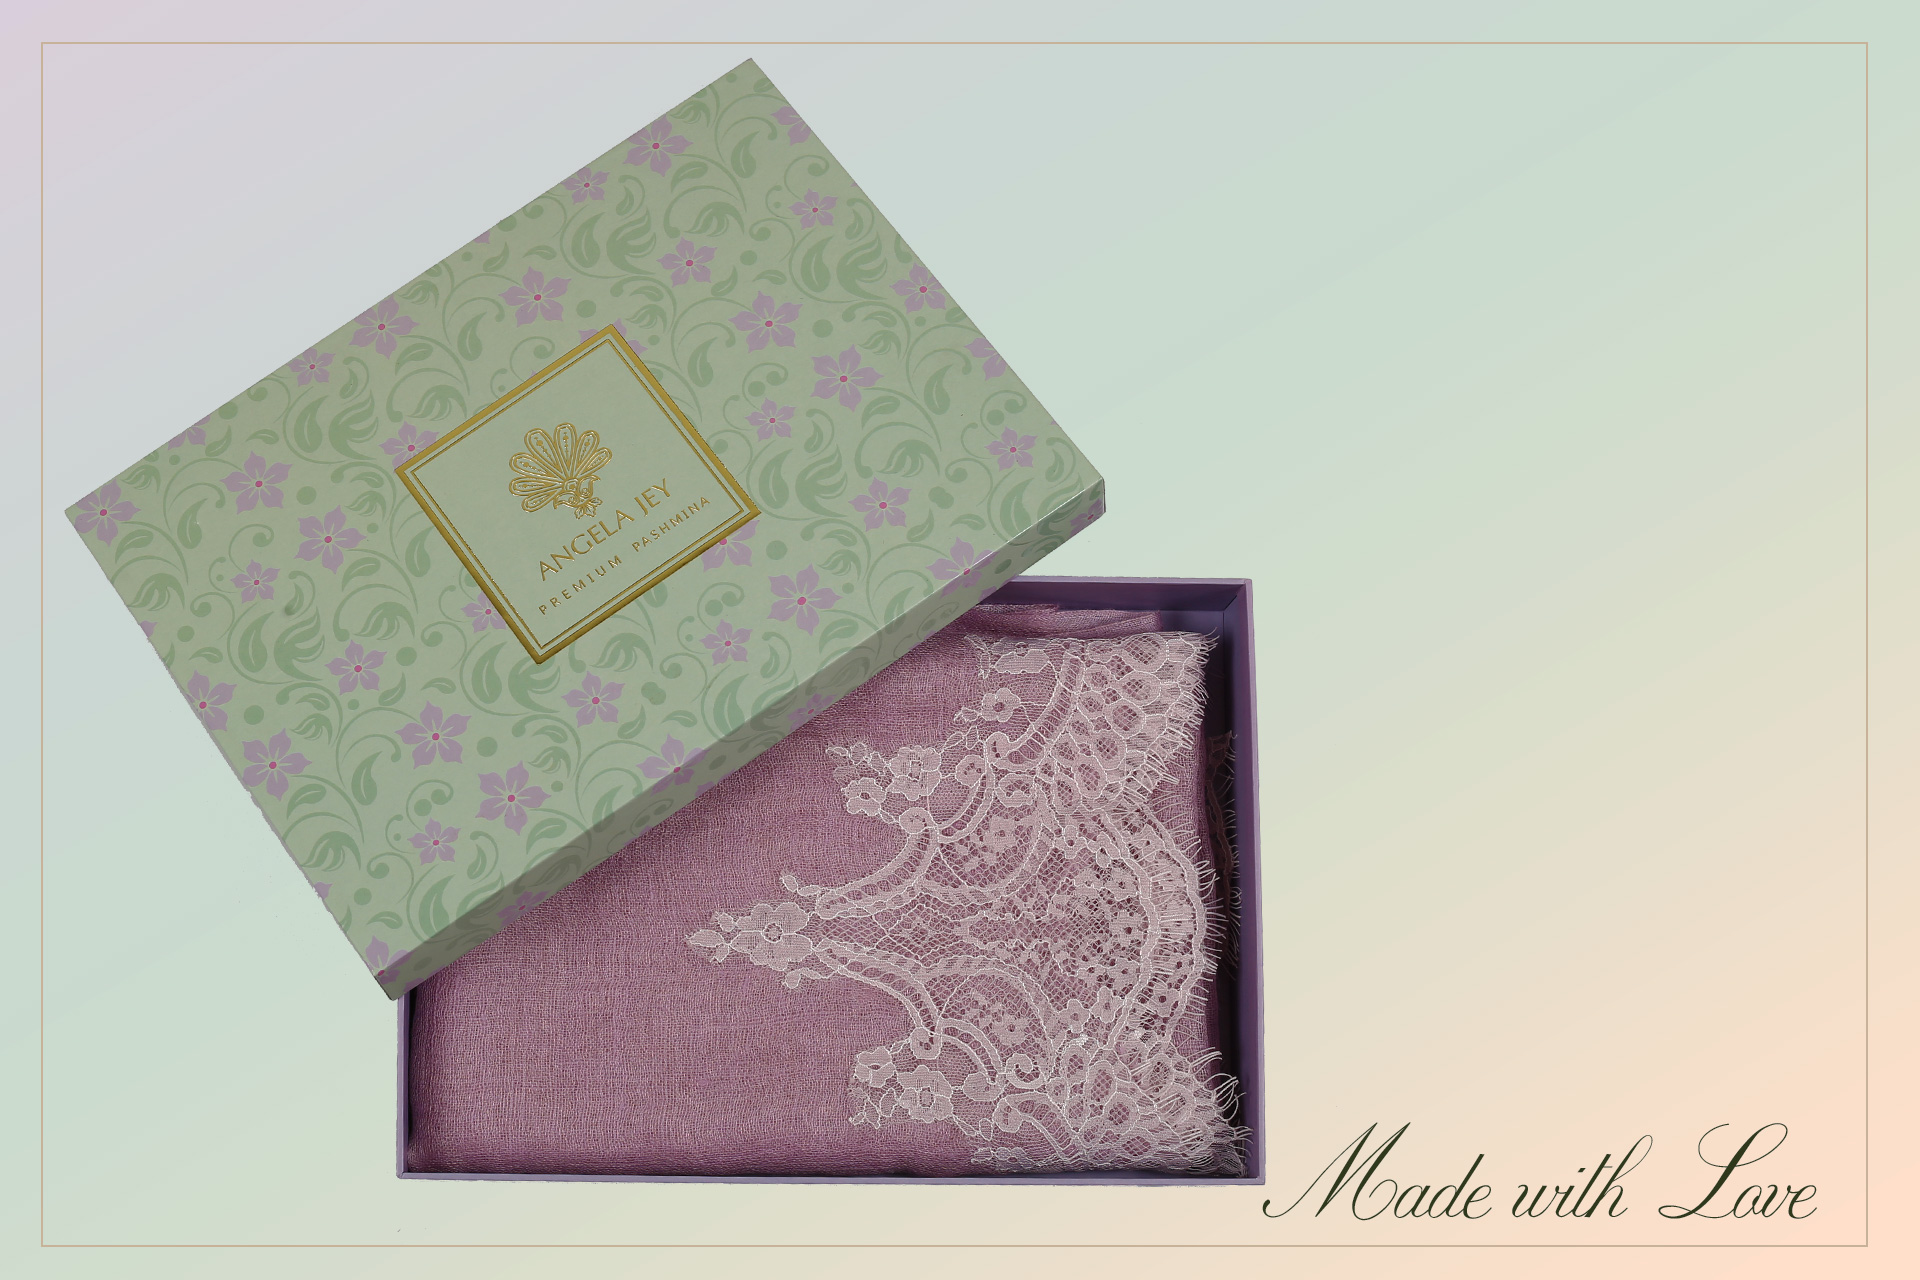 Pashmina – the gift that befitting all occasions